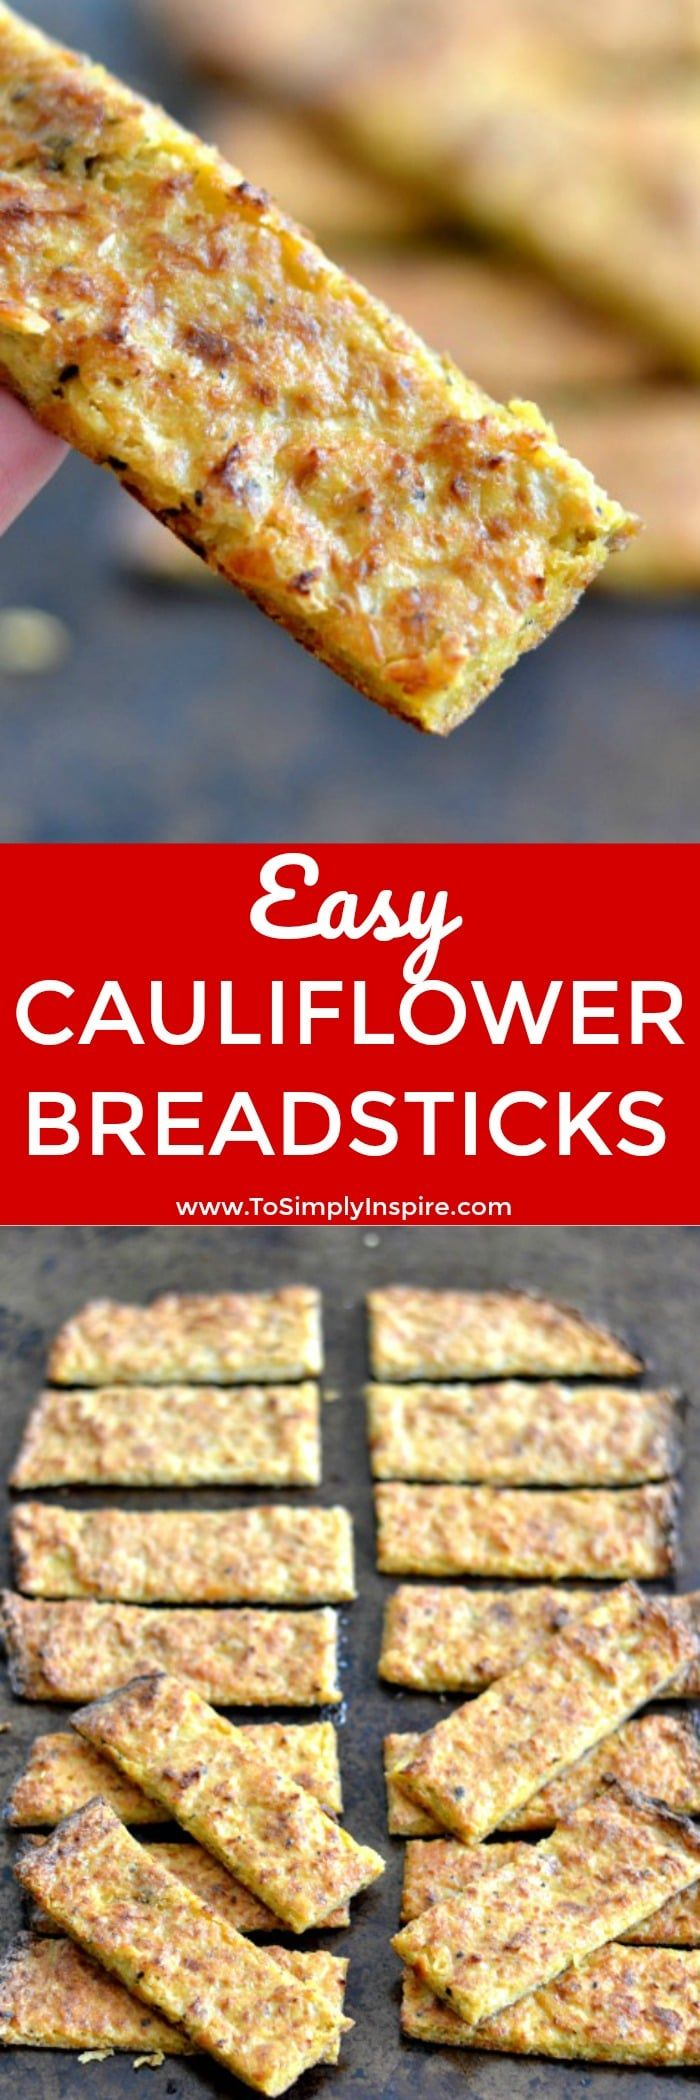 These Cauliflower Breadsticks are a wonderful little healthy, low carb option to add to any meal or as an appetizer. | www.ToSimplyInspire.com #cauliflower #breadsticks #lowcarb #easy